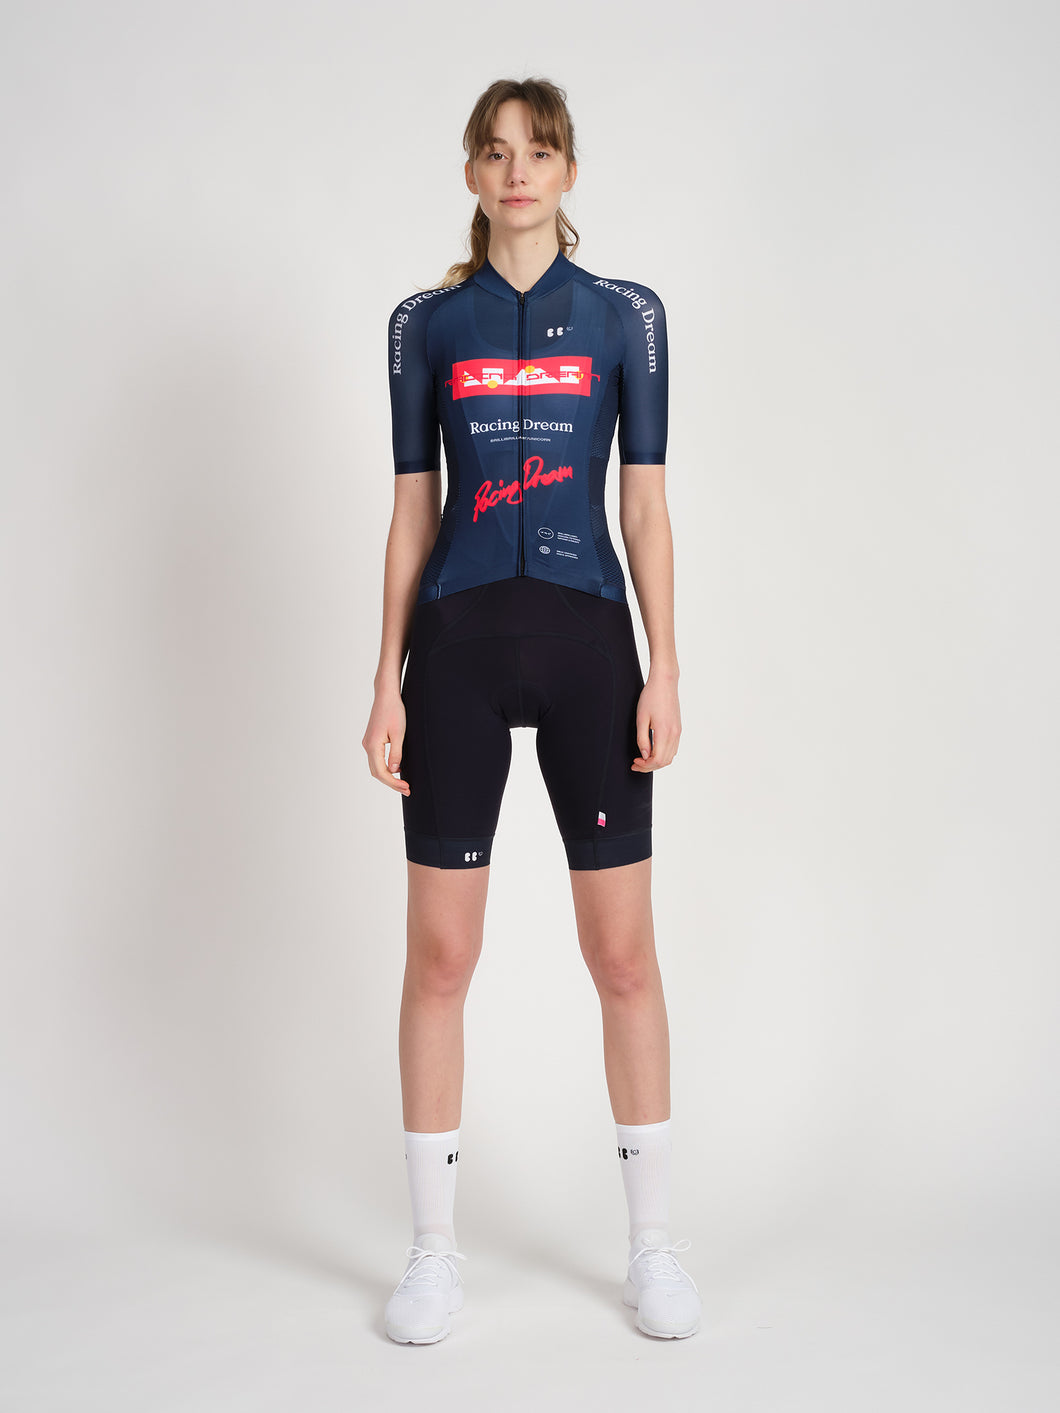 Racing Dream Jersey Navy Women